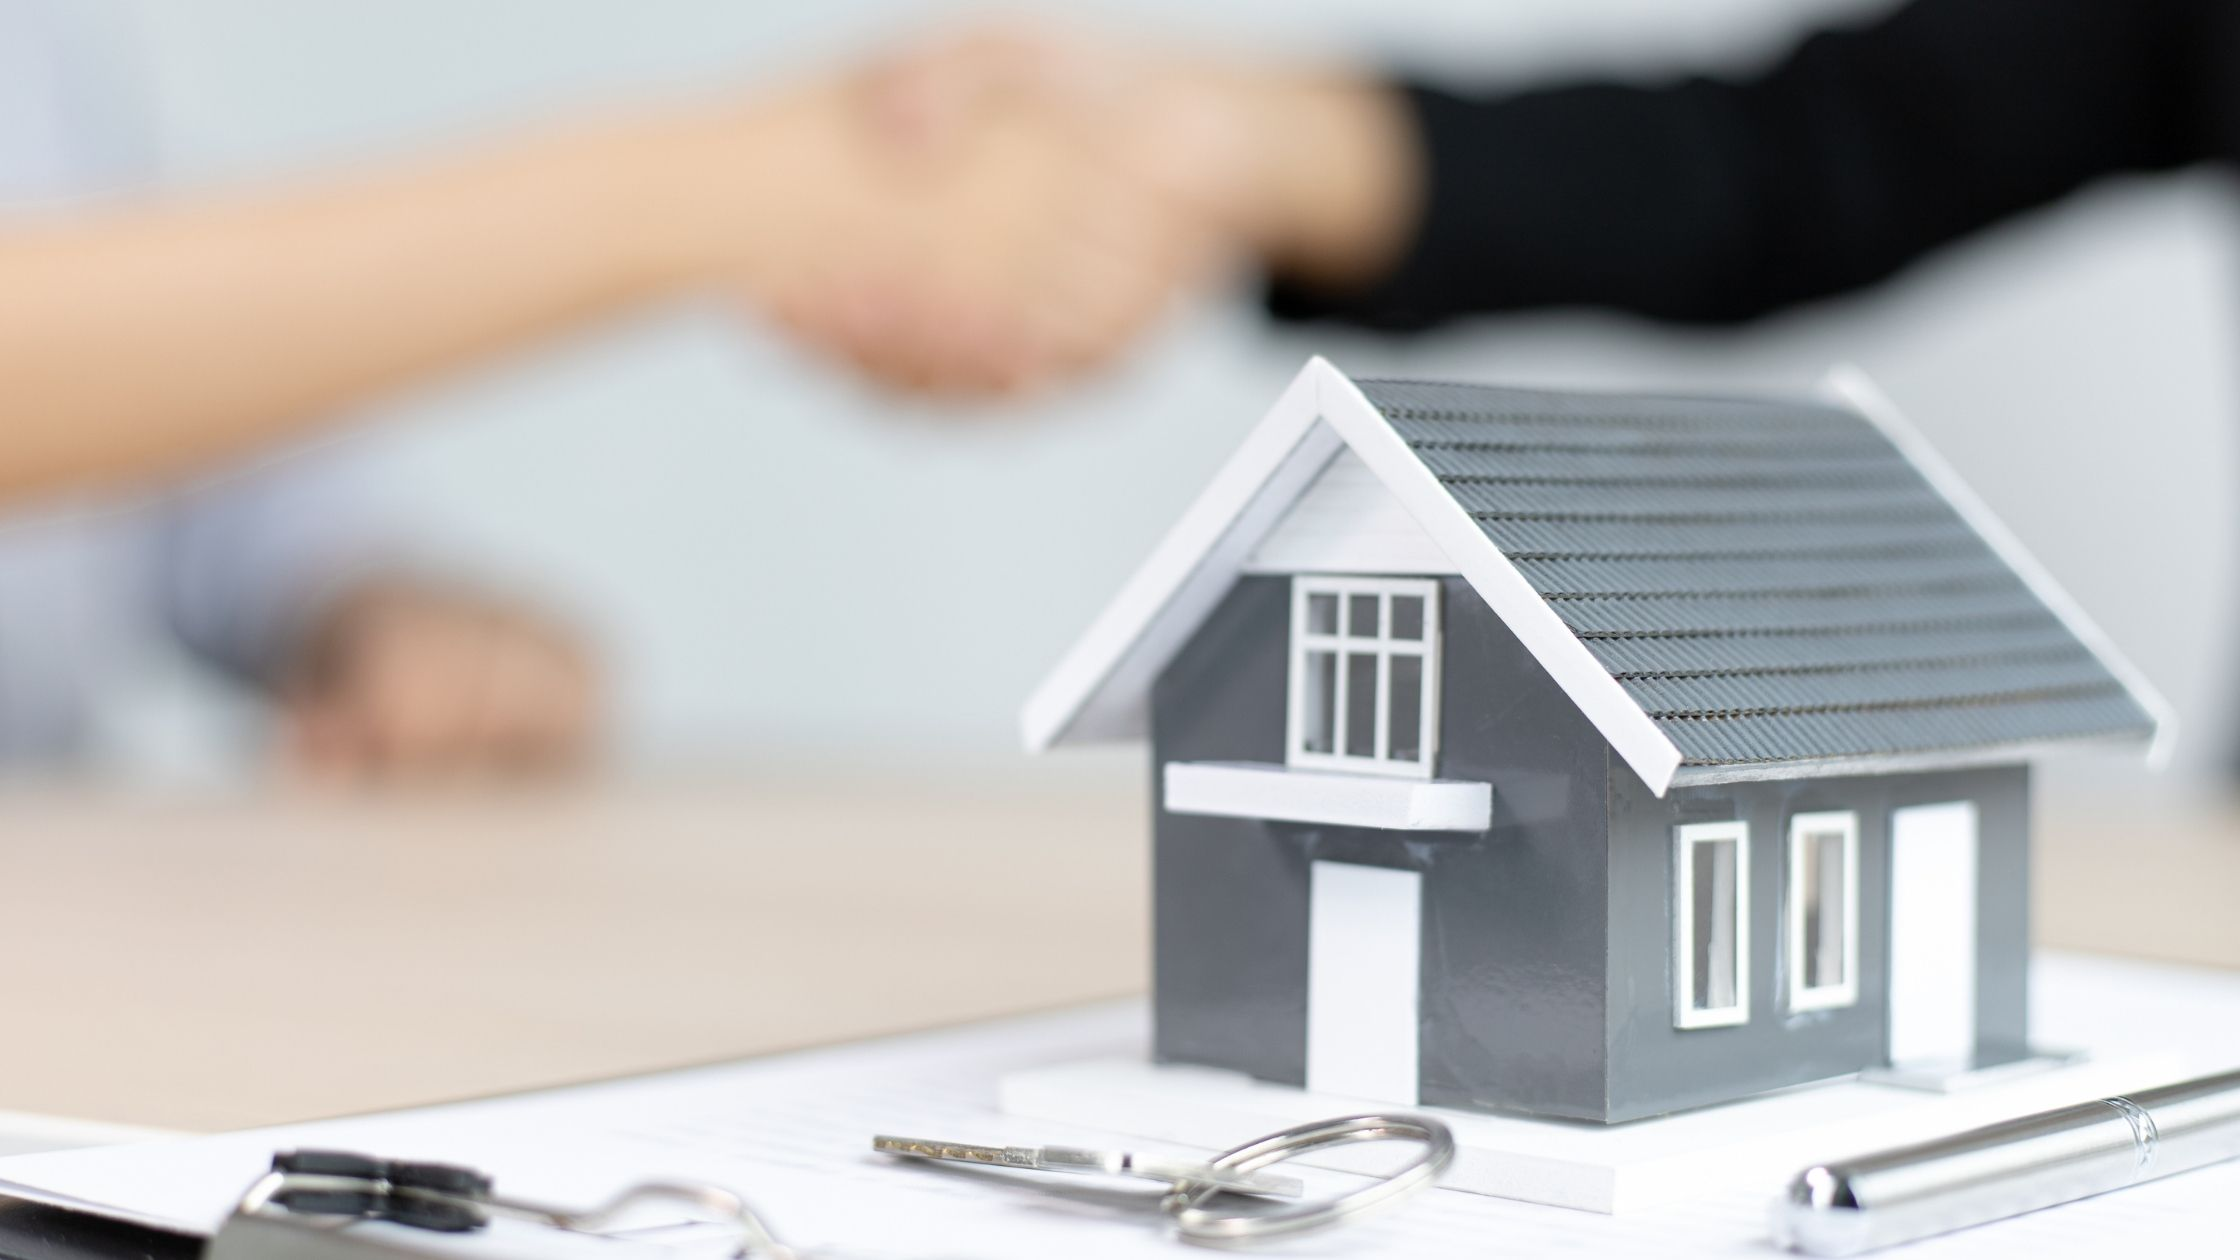 Mortgage Insurance Policy Benefits   Why Should You Get Mortgage Insurance?